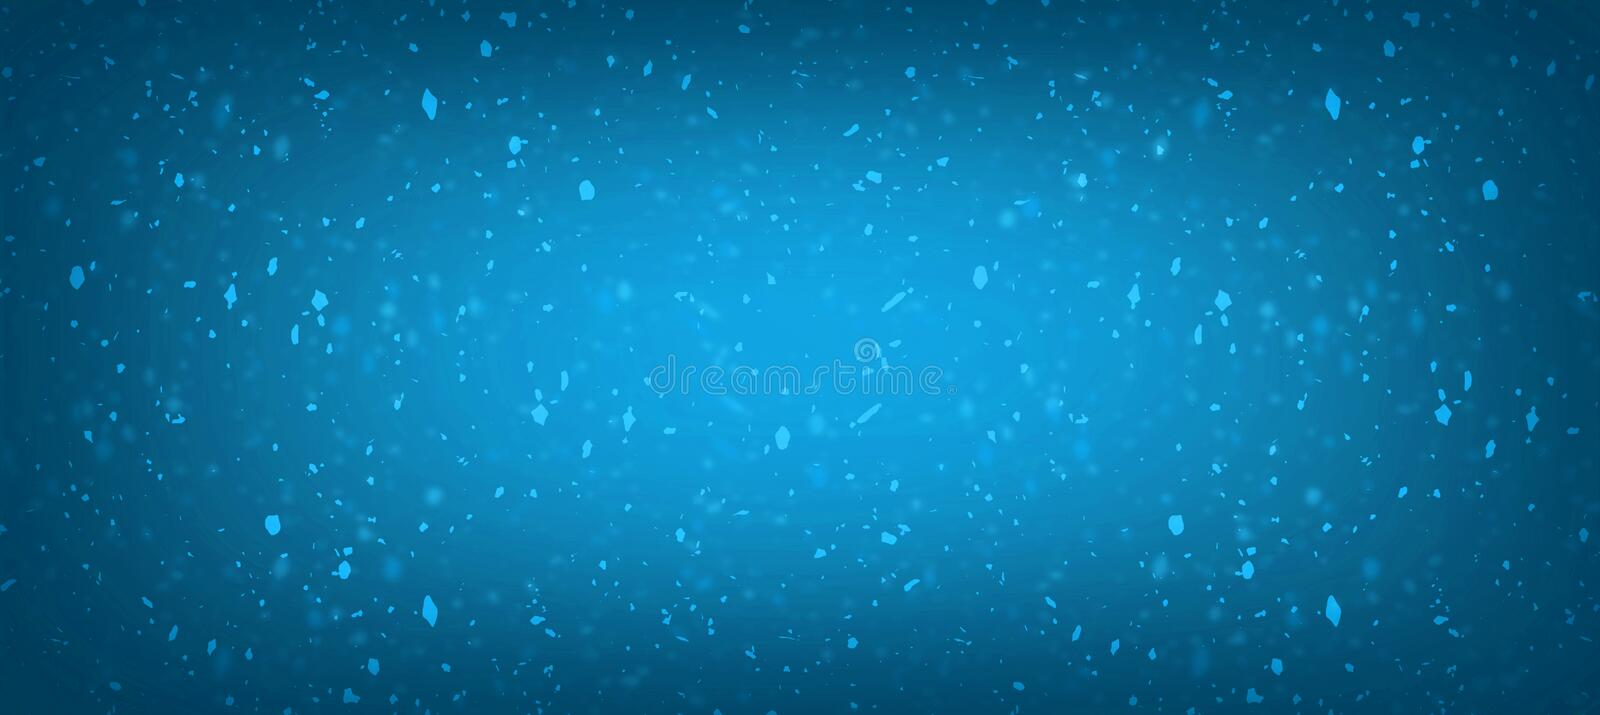 Navy blue glitter for abstract background Princess Baby Girl Birthday Background, Navy blue glitter vintage lights stock images